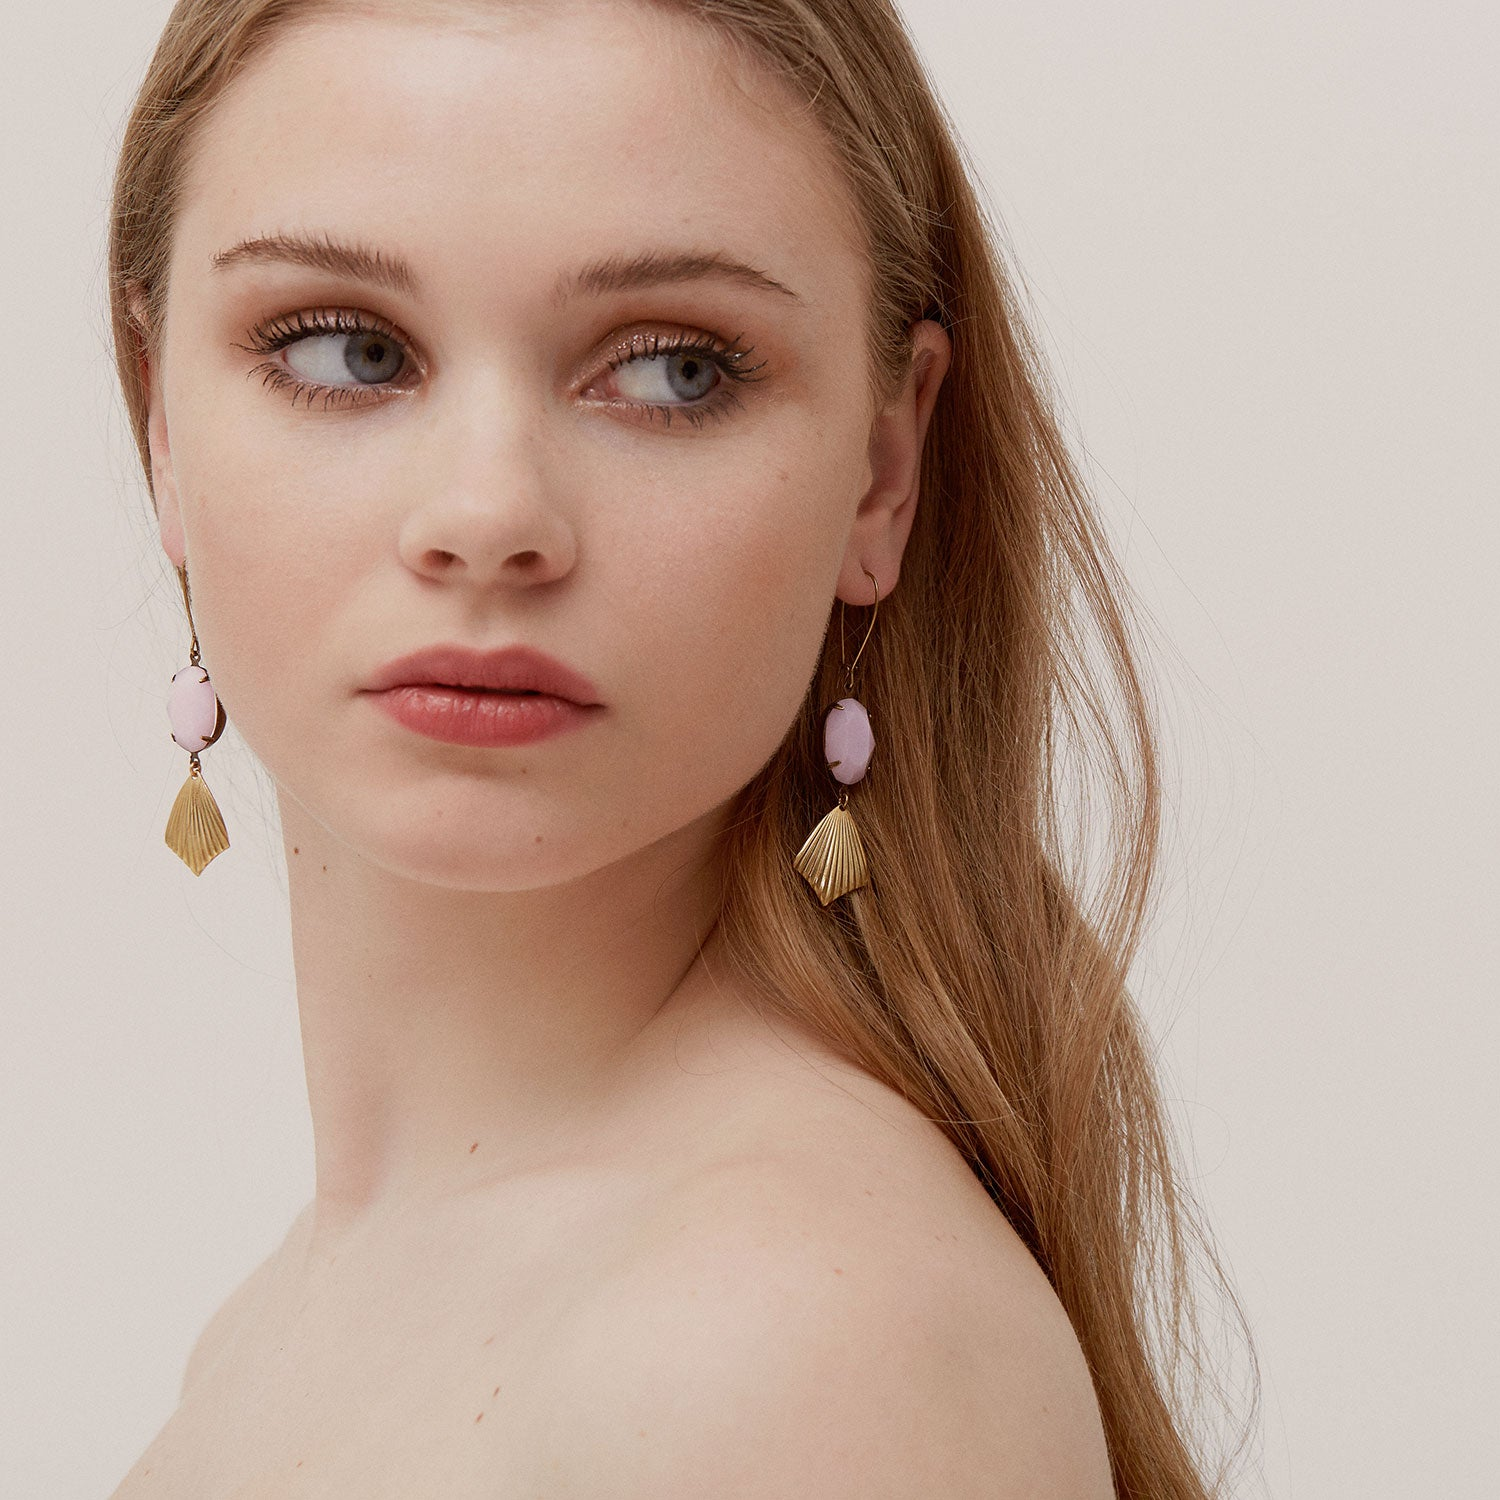 Nausica Earrings in Pink Alabaster (SD549)